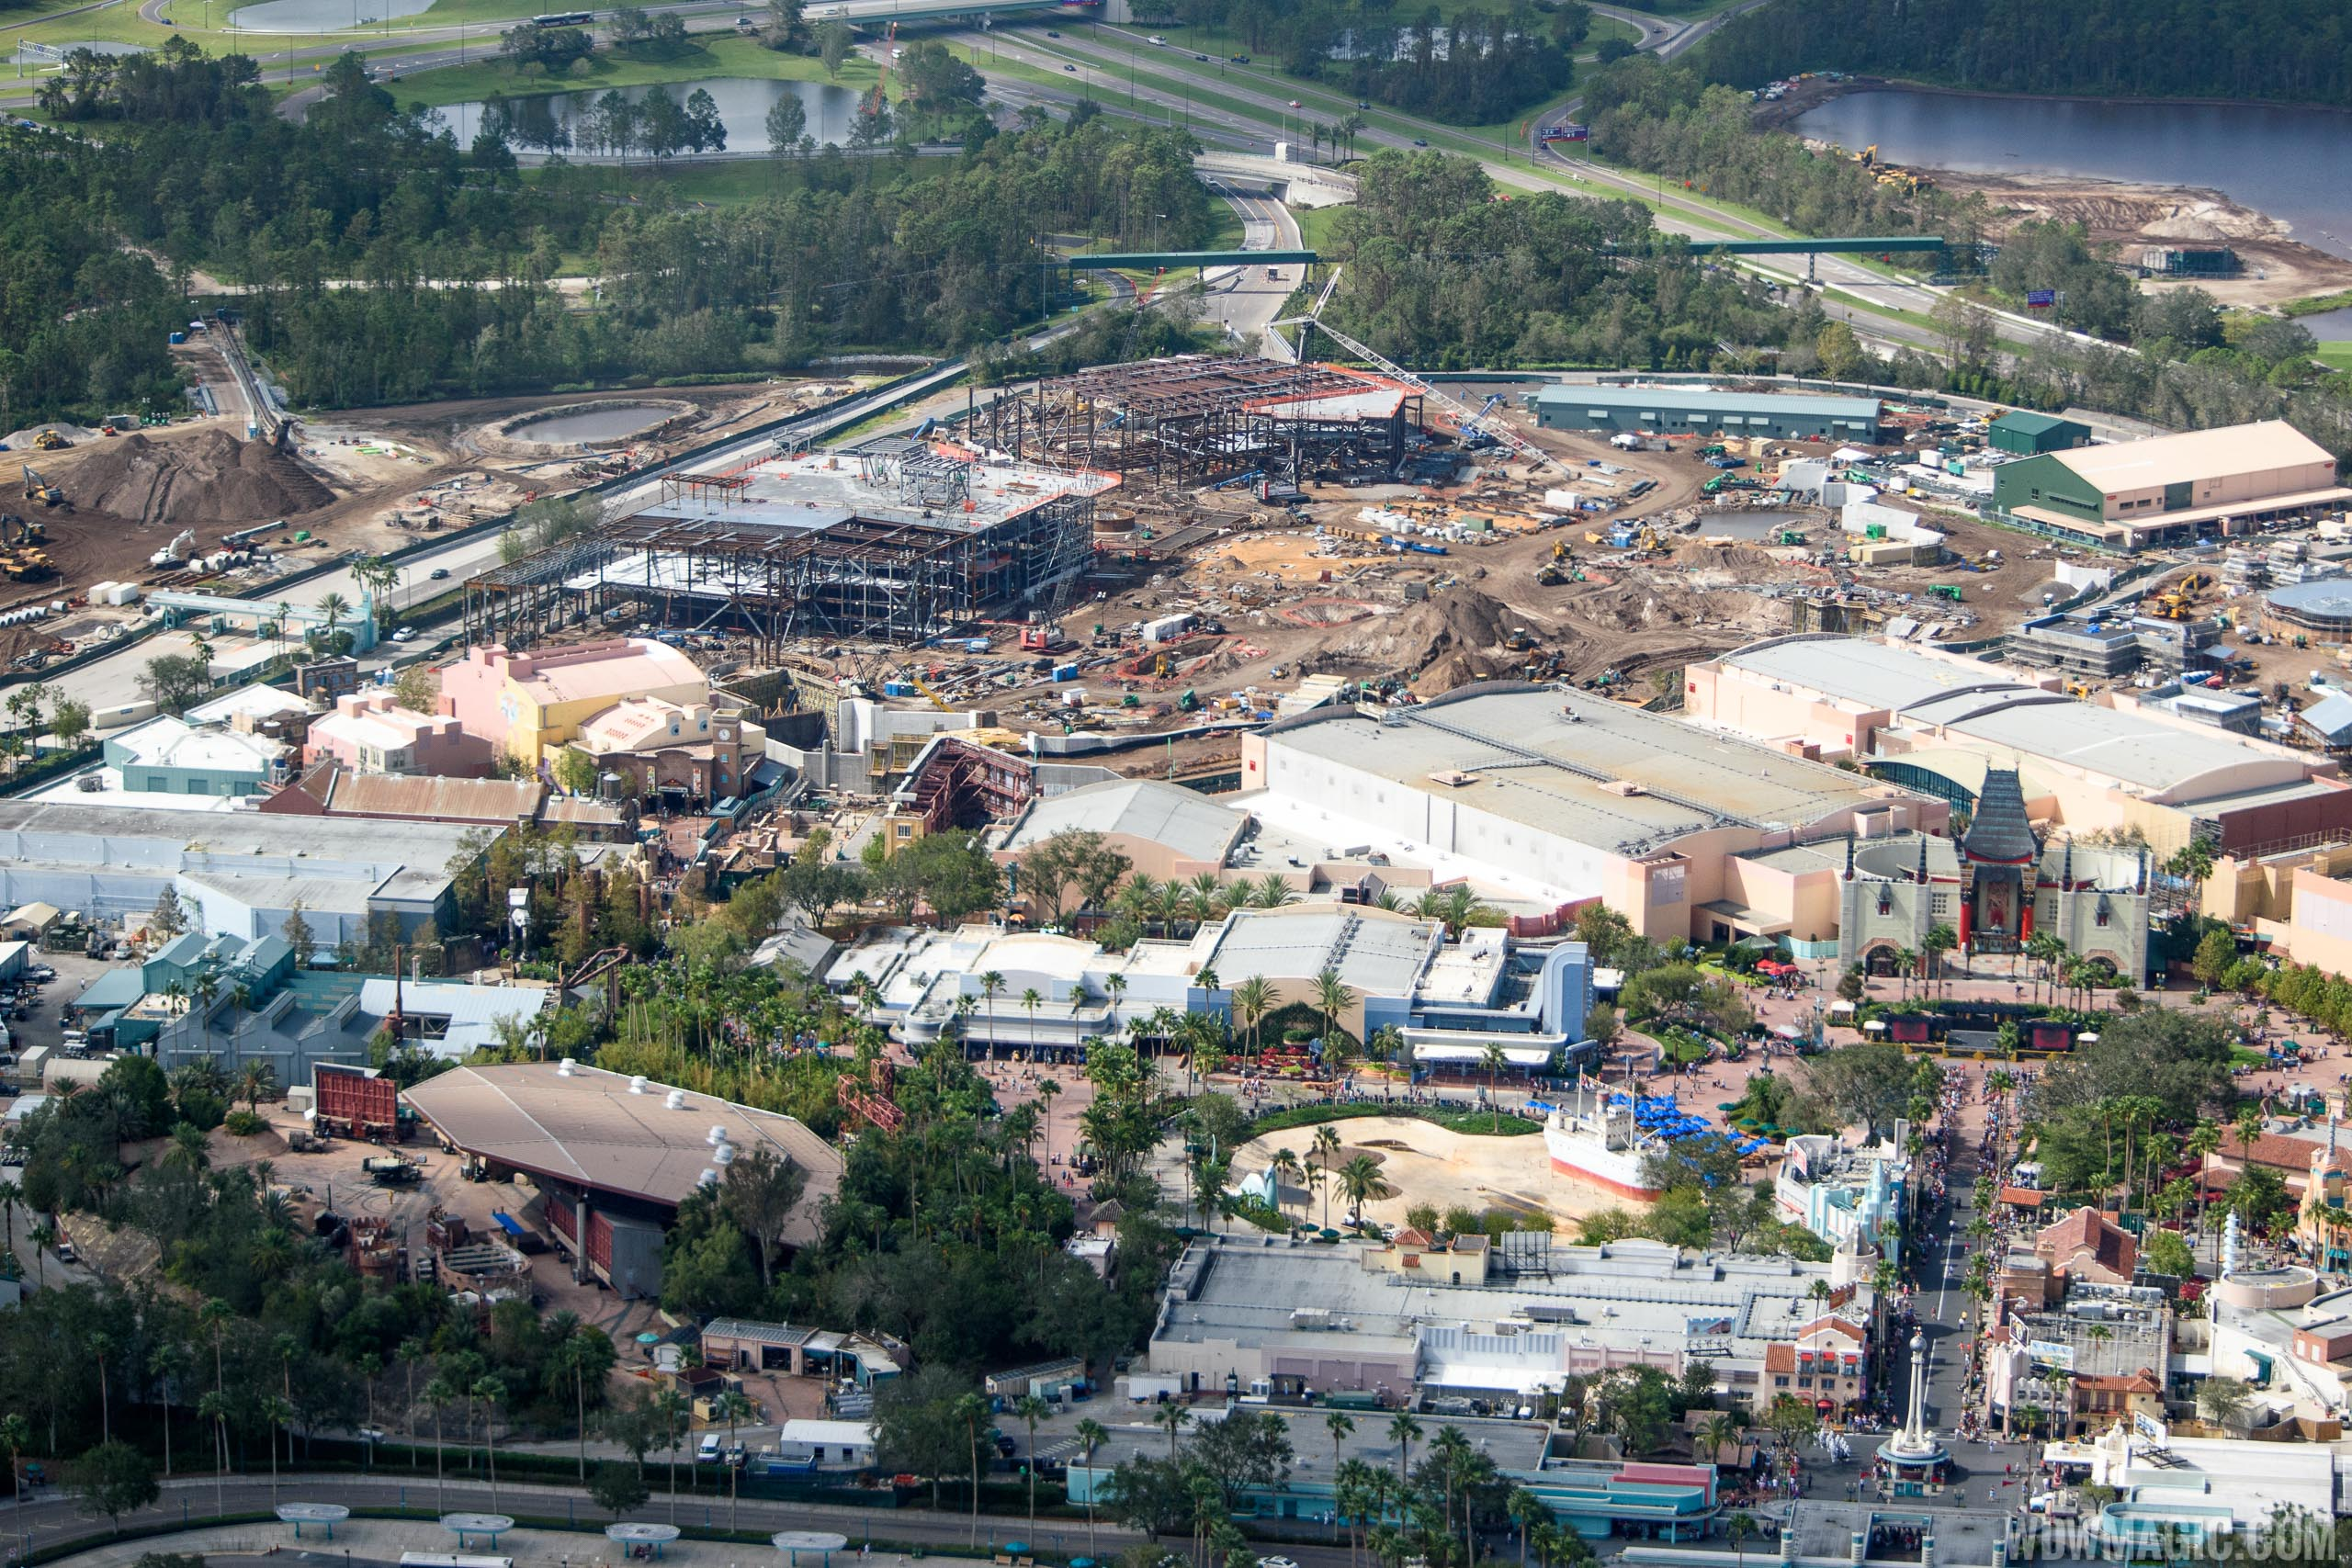 Wide view of Star Wars Galaxy's Edge at Disney's Hollywood Studios